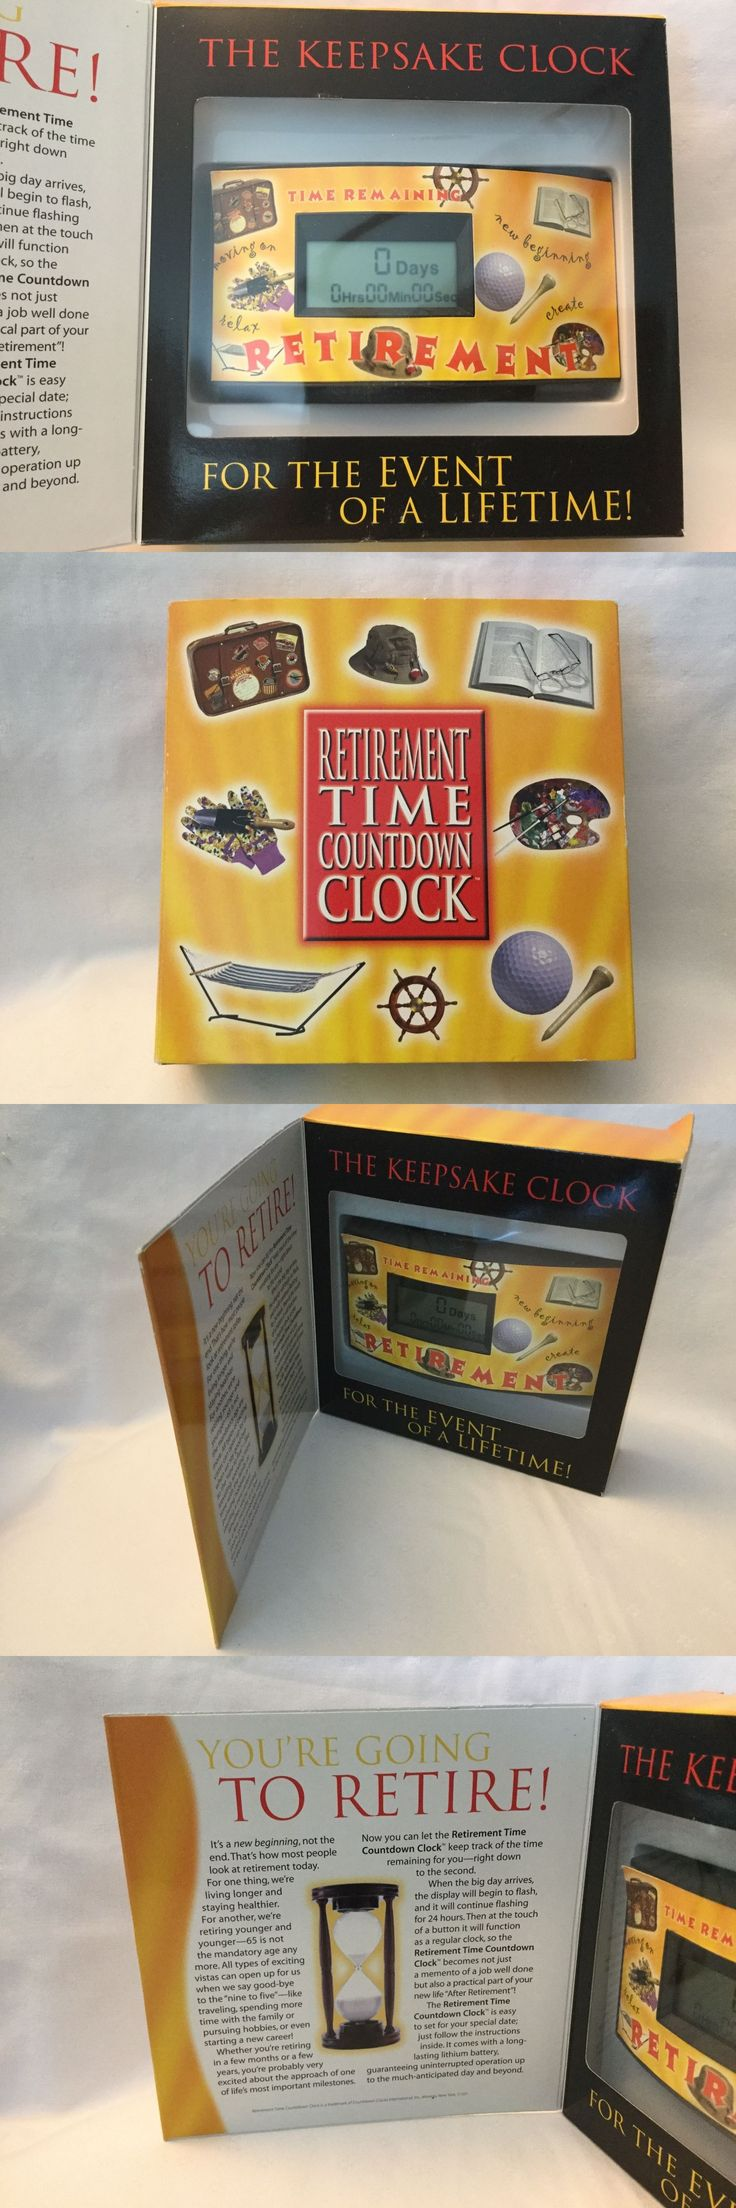 Gag Gifts 19257: Retirement Countdown Clock Gift Boxed Keepsake Days Hours Time Remaining Retire -> BUY IT NOW ONLY: $42 on eBay!